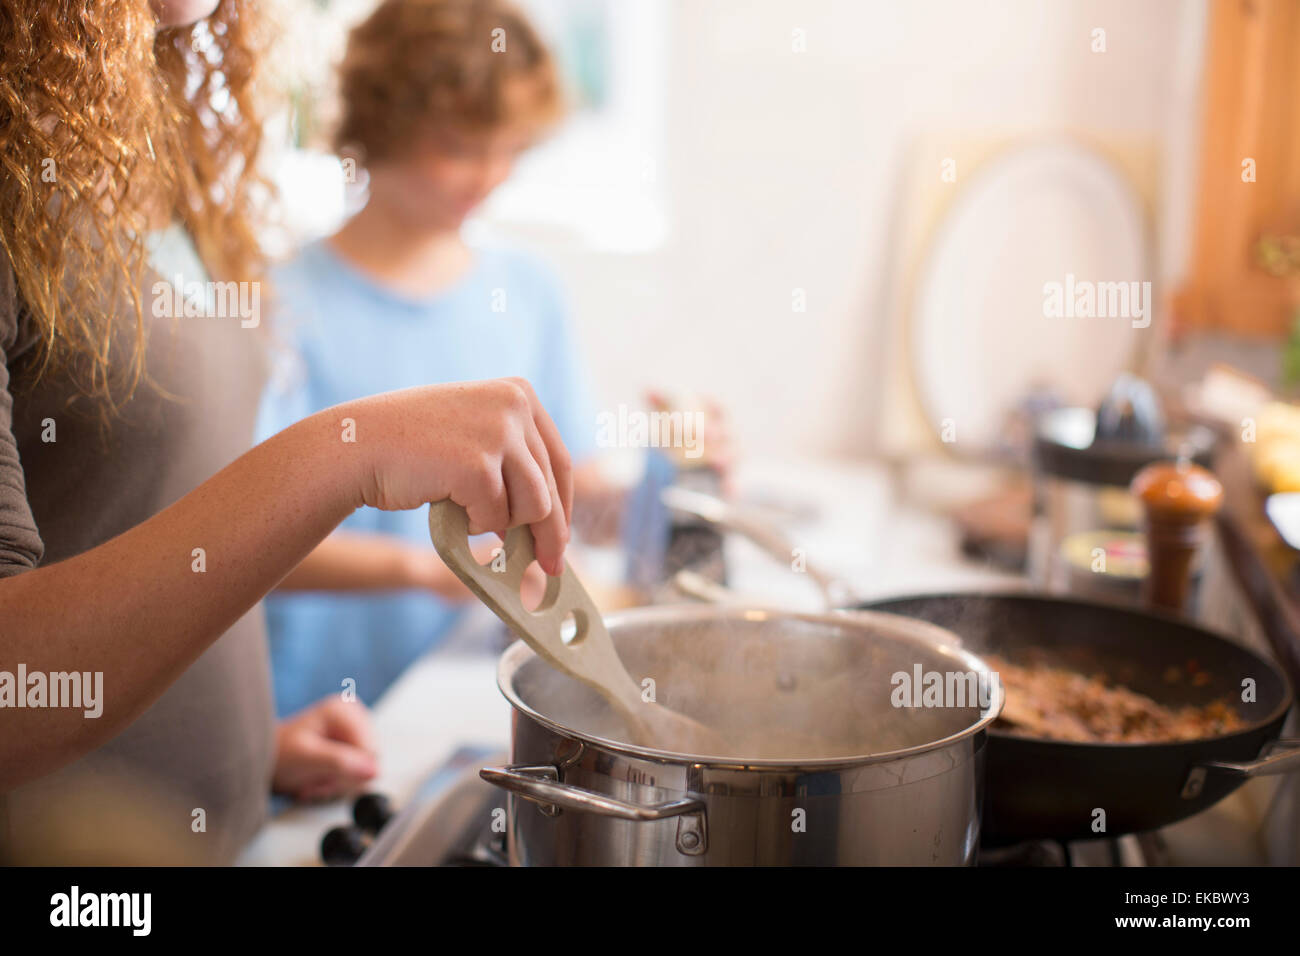 Siblings cooking in kitchen - Stock Image